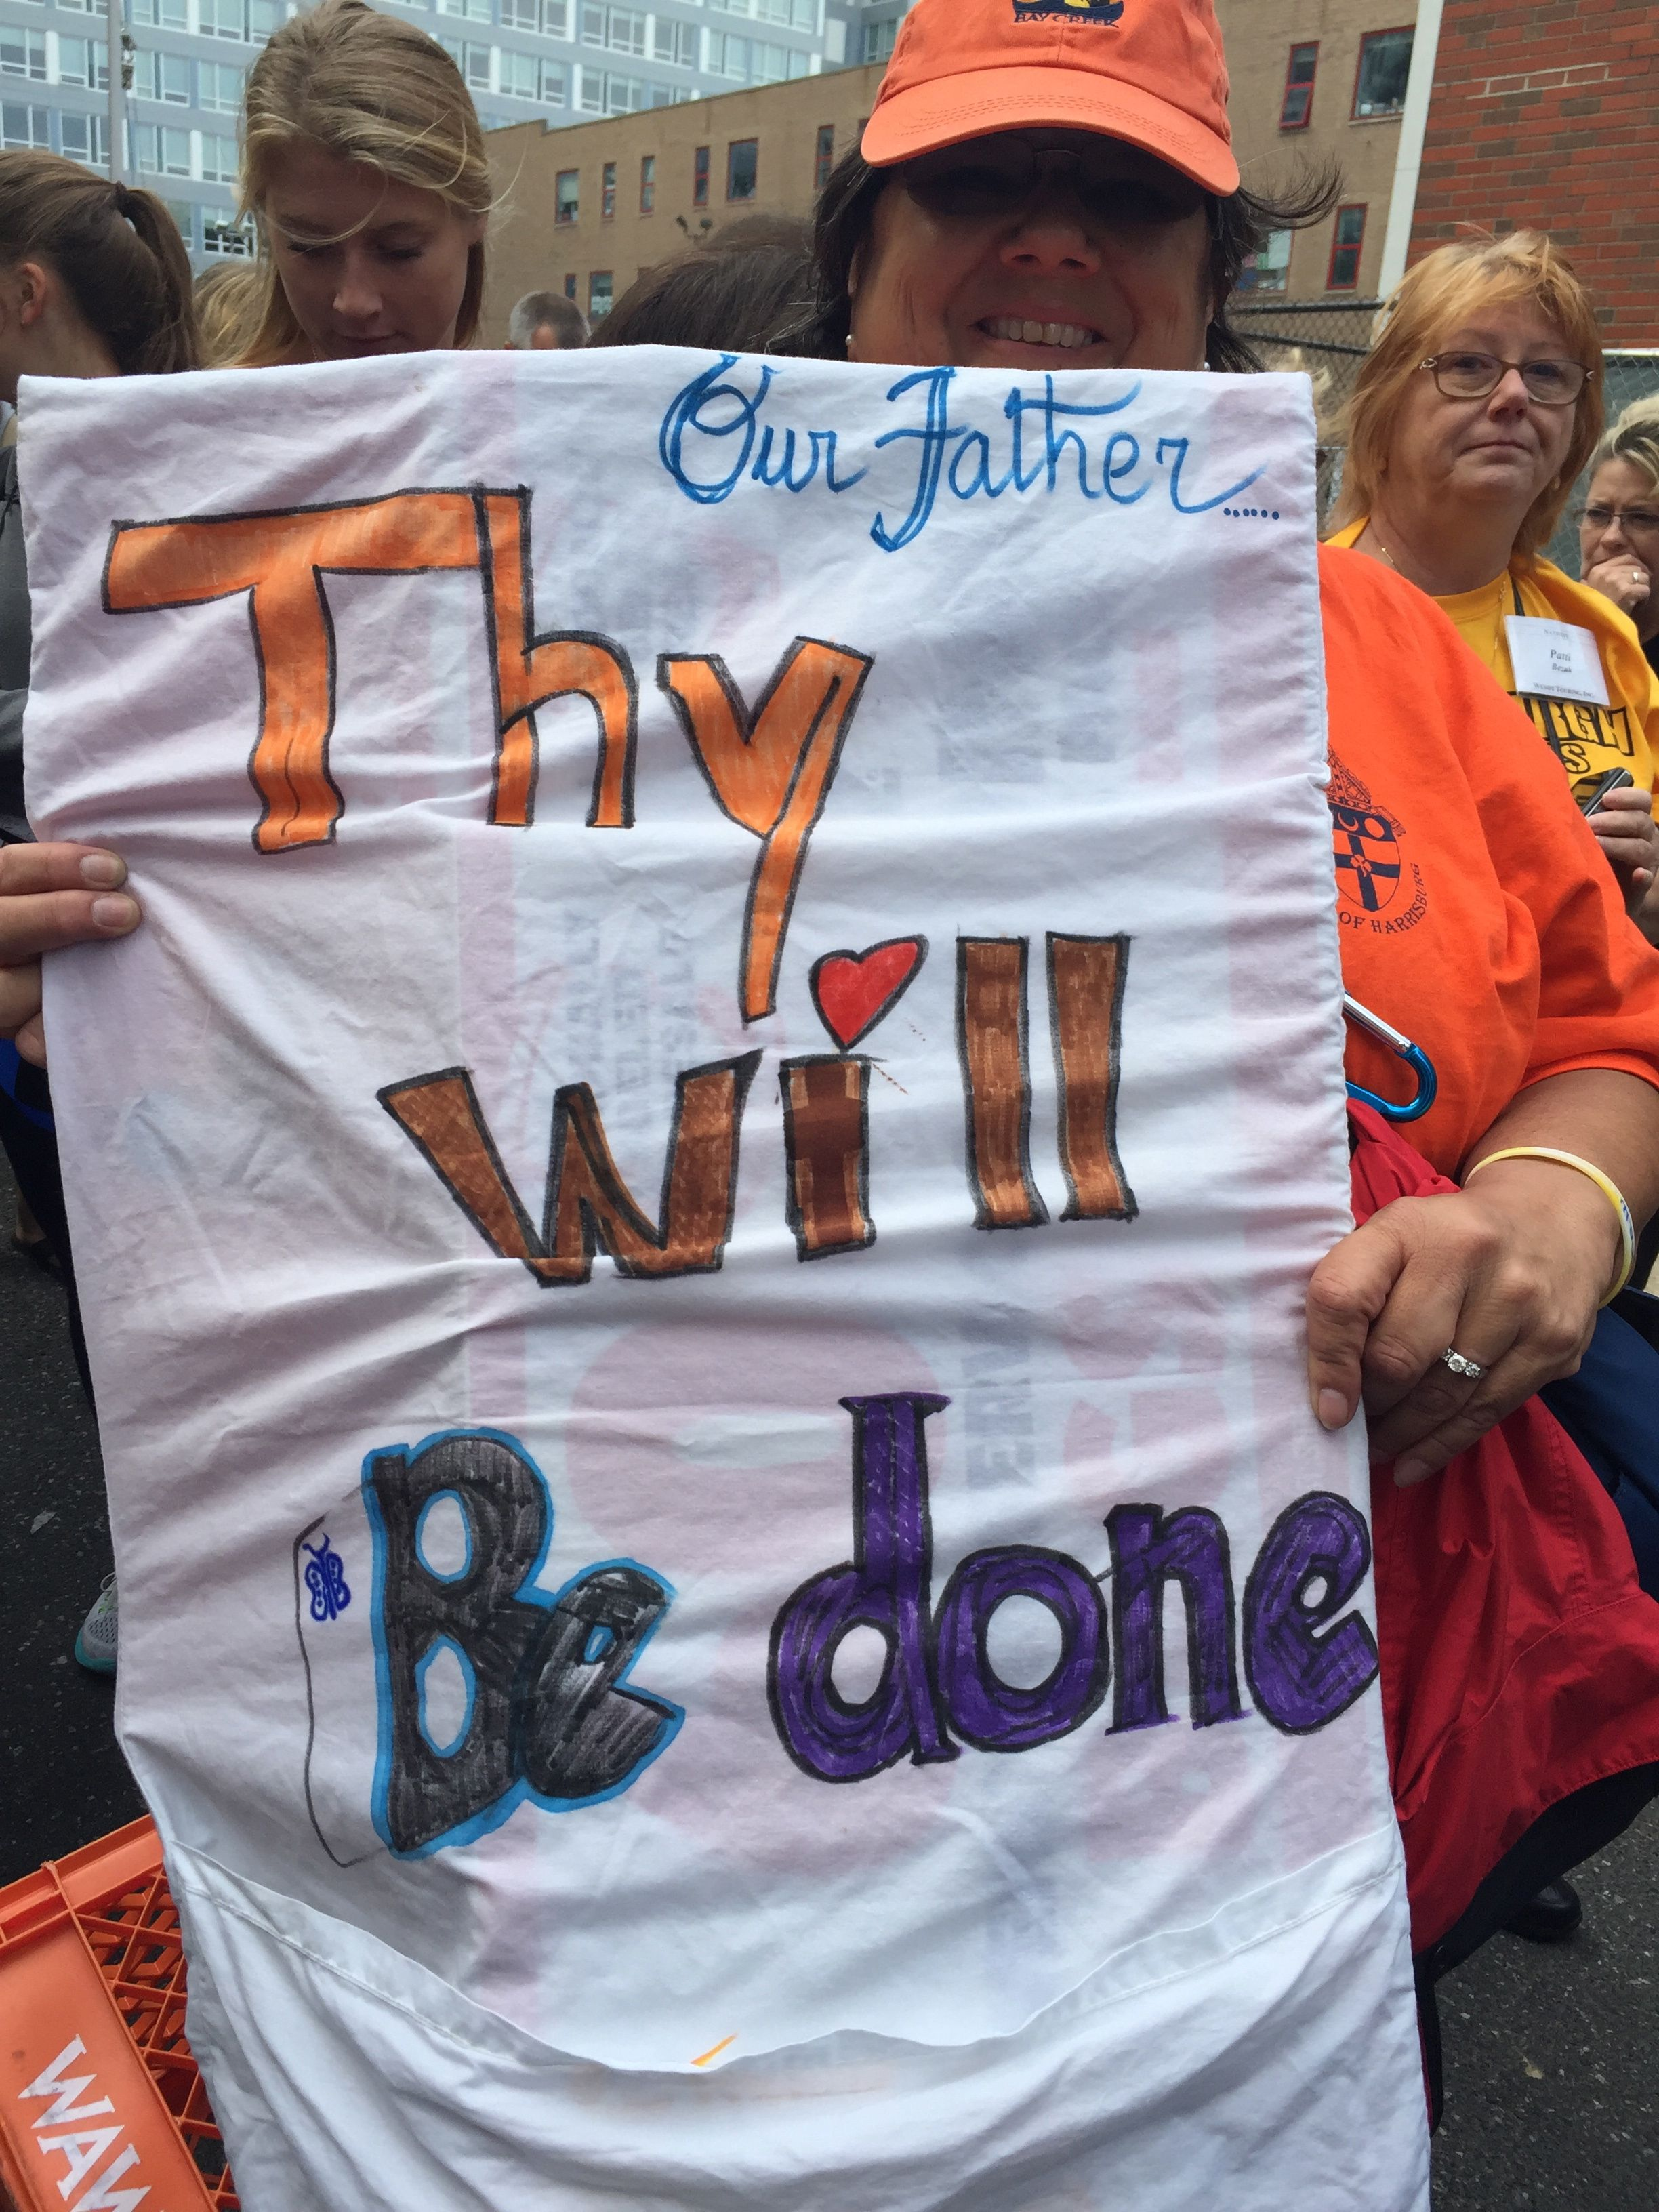 Sign created by a member of the Archdiocese of Harrisburg after going to confession that said Thy Will Be Done.